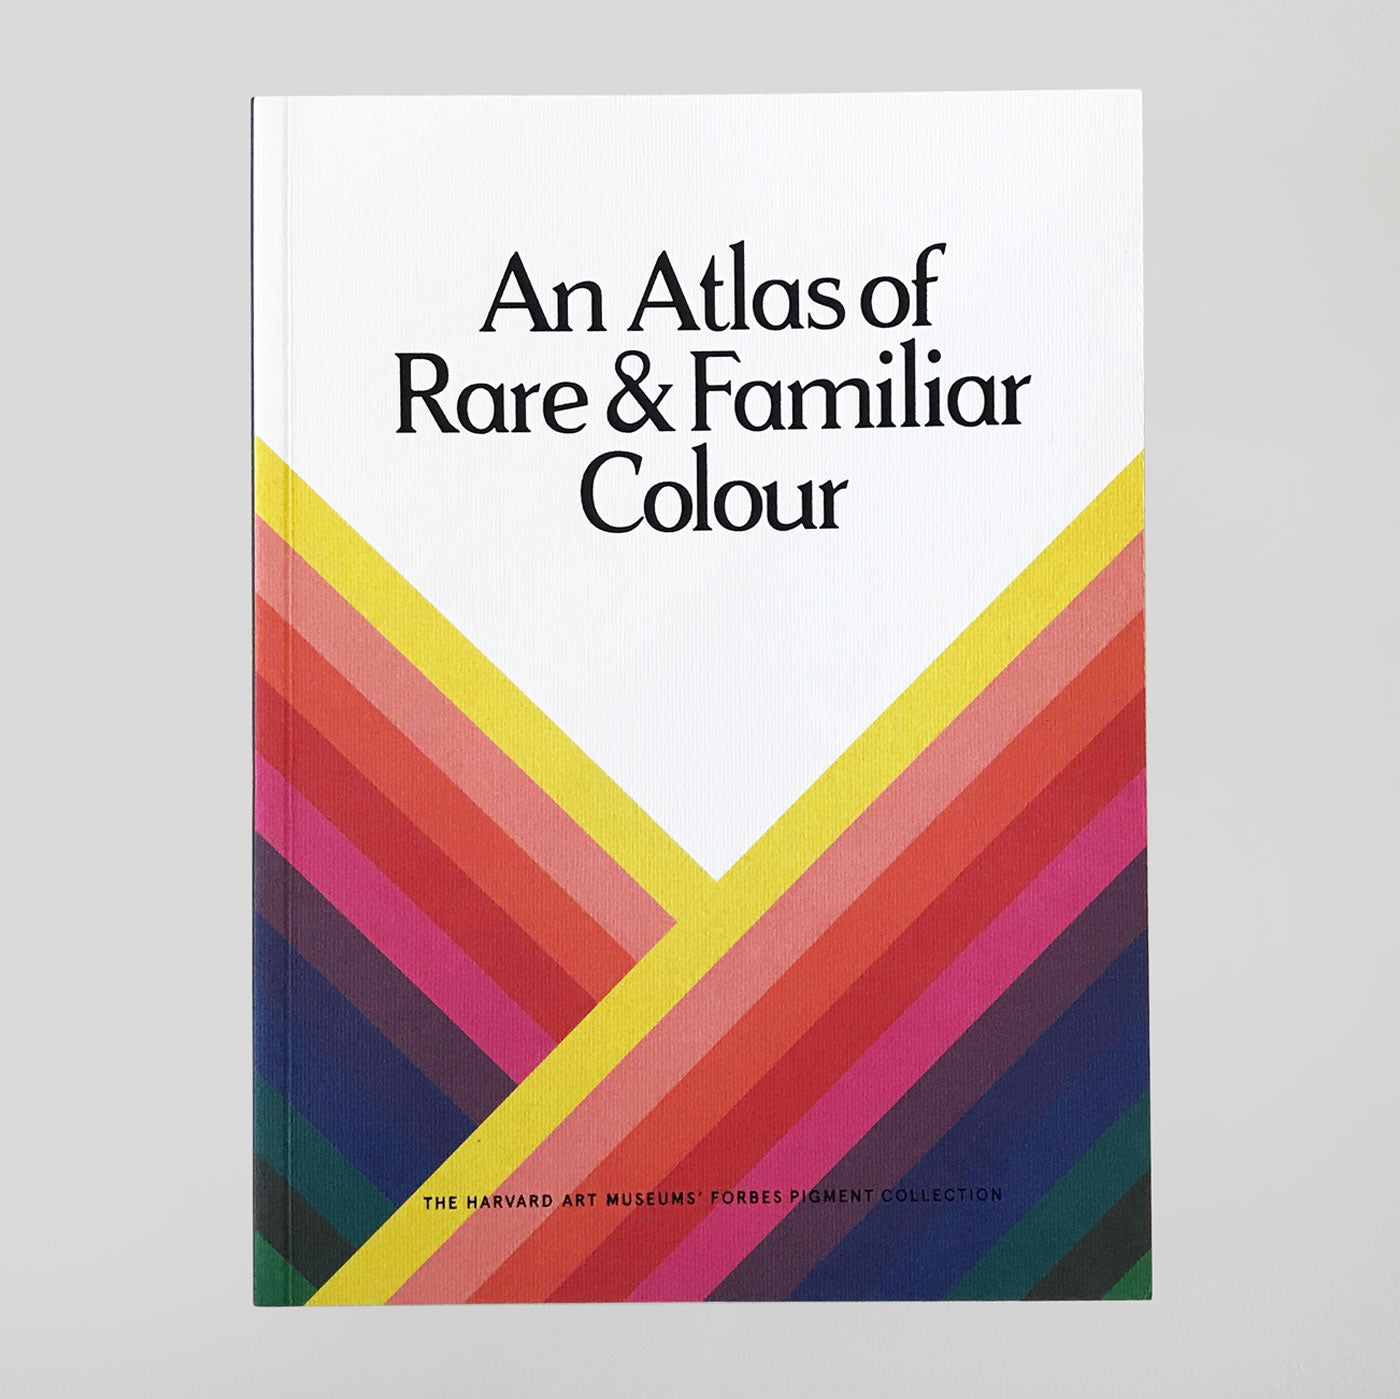 An Atlas of Rare & Familiar Colour - Colours May Vary